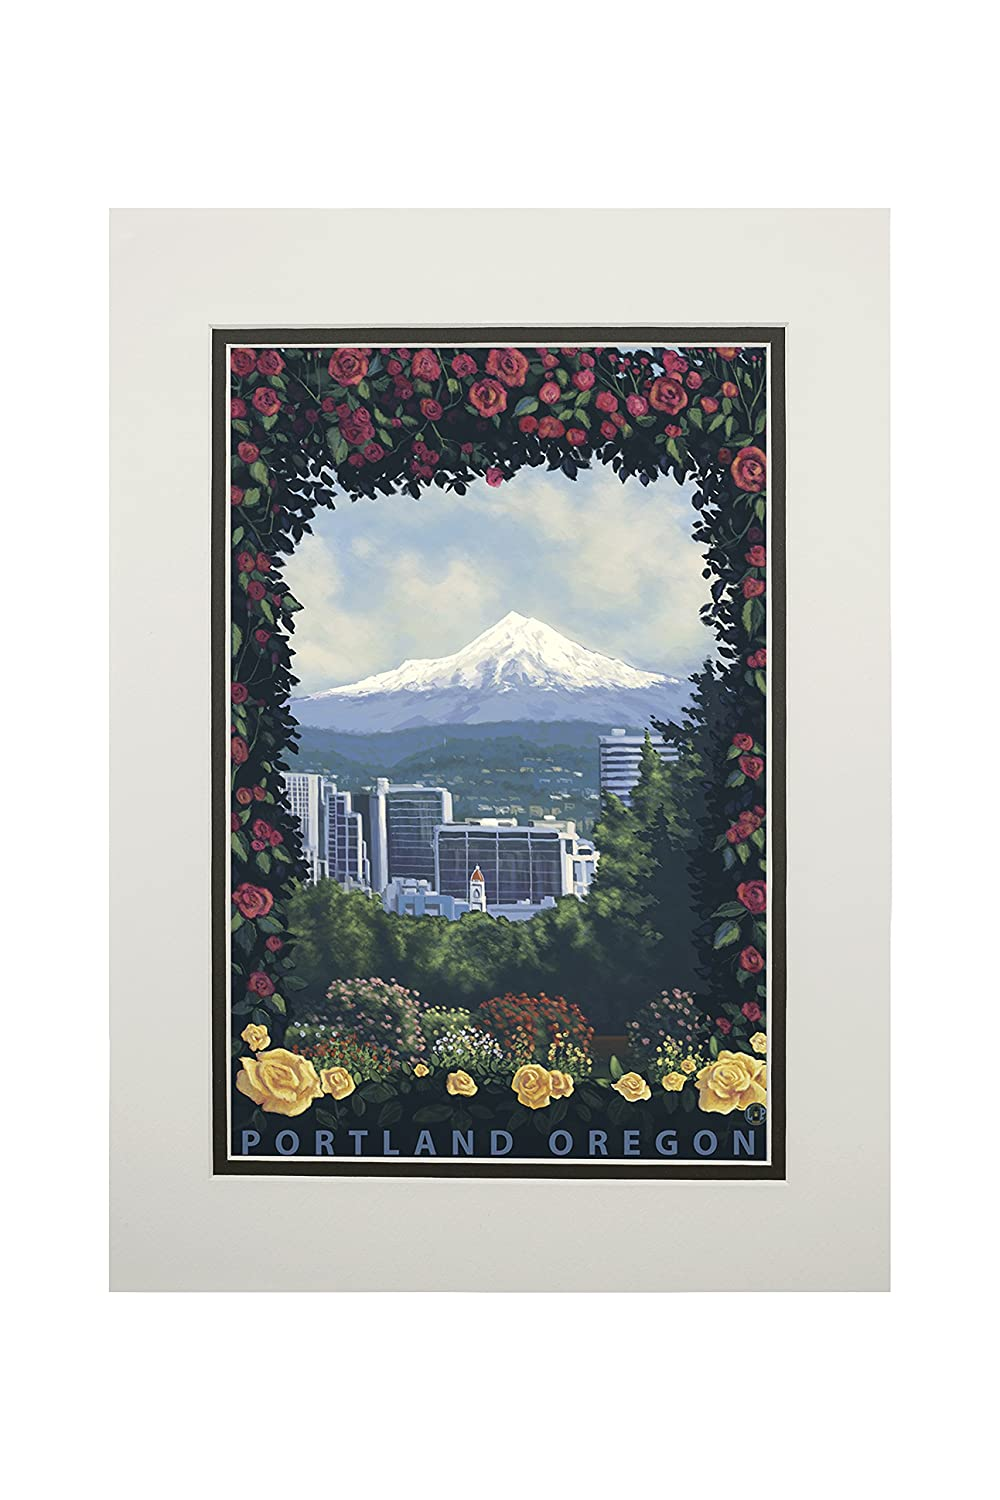 【10%OFF】 ポートランド LANT-30923-11x14M、オレゴン州 – Roses and Art City Art 11 x 14 Matted Art Print LANT-30923-11x14M B06XZJ6ZG7 11 x 14 Matted Art Print, 代官山ワインサロン LeLuxe:0d5ce885 --- mcrisartesanato.com.br